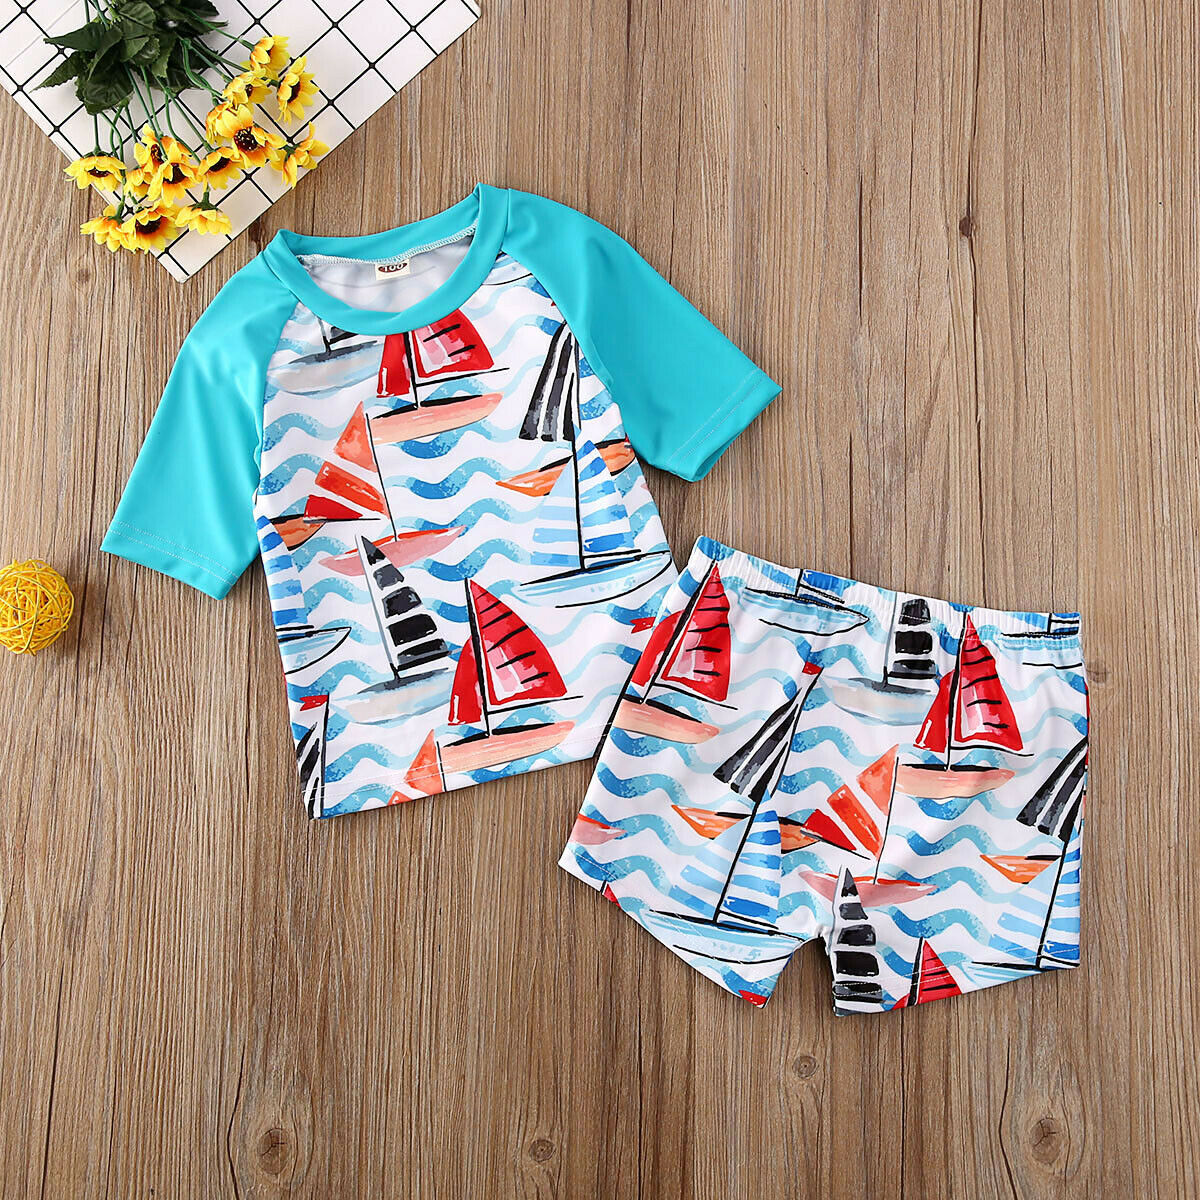 pudcoco 2020 Hot New Summer Boy Baby Swimwear 2PCS Set Swimming Suit